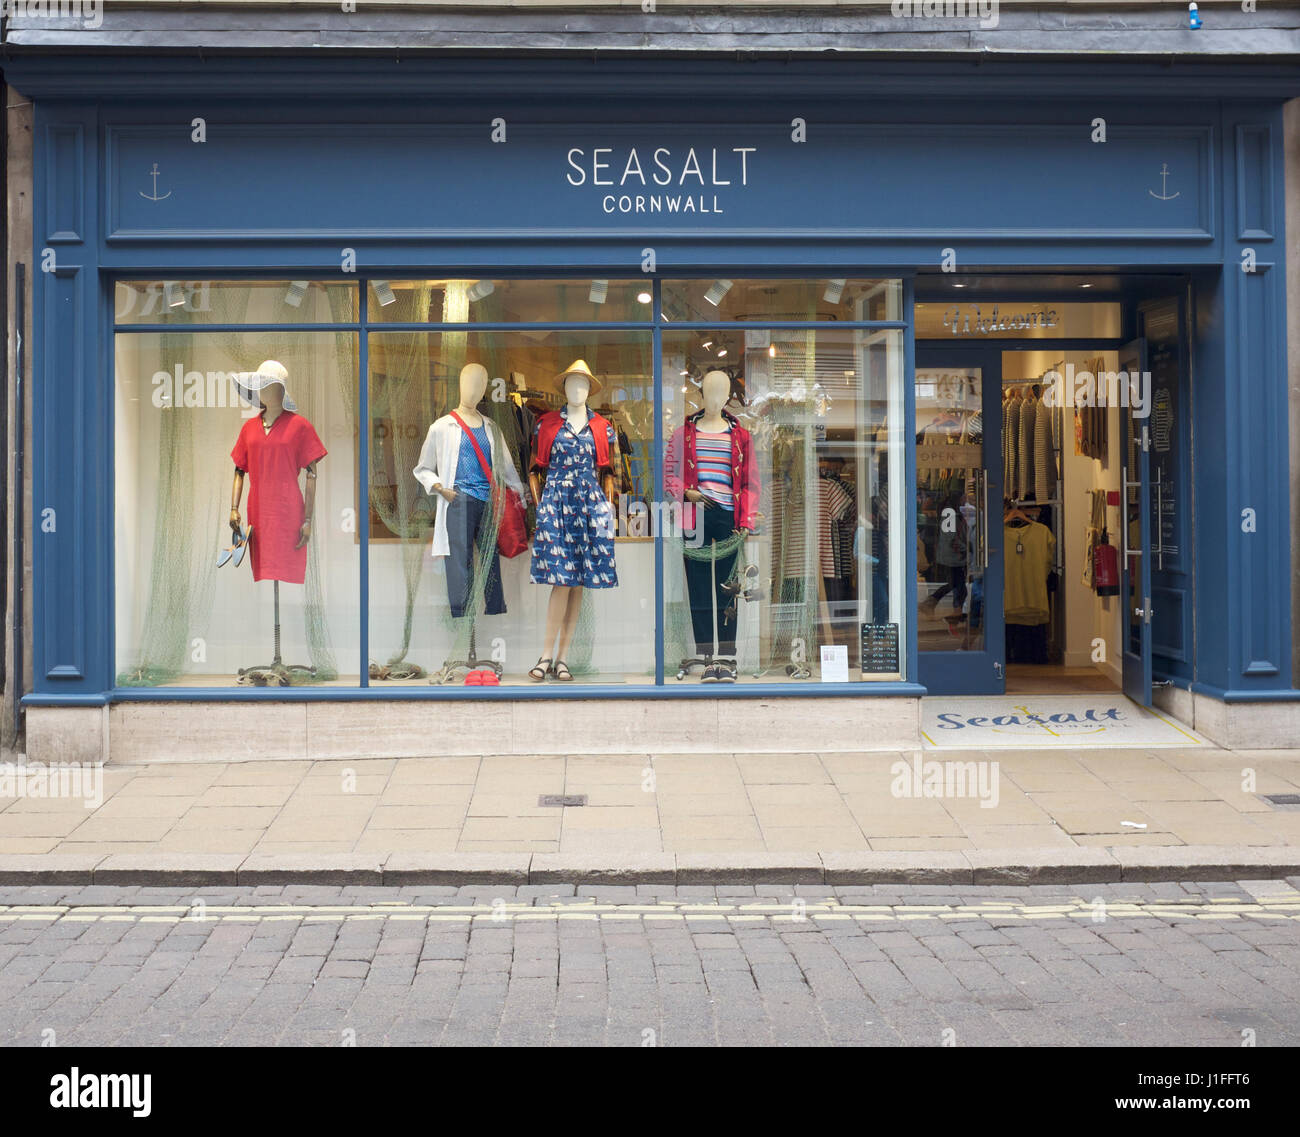 seasalt  cornwall shop in York city centre - Stock Image